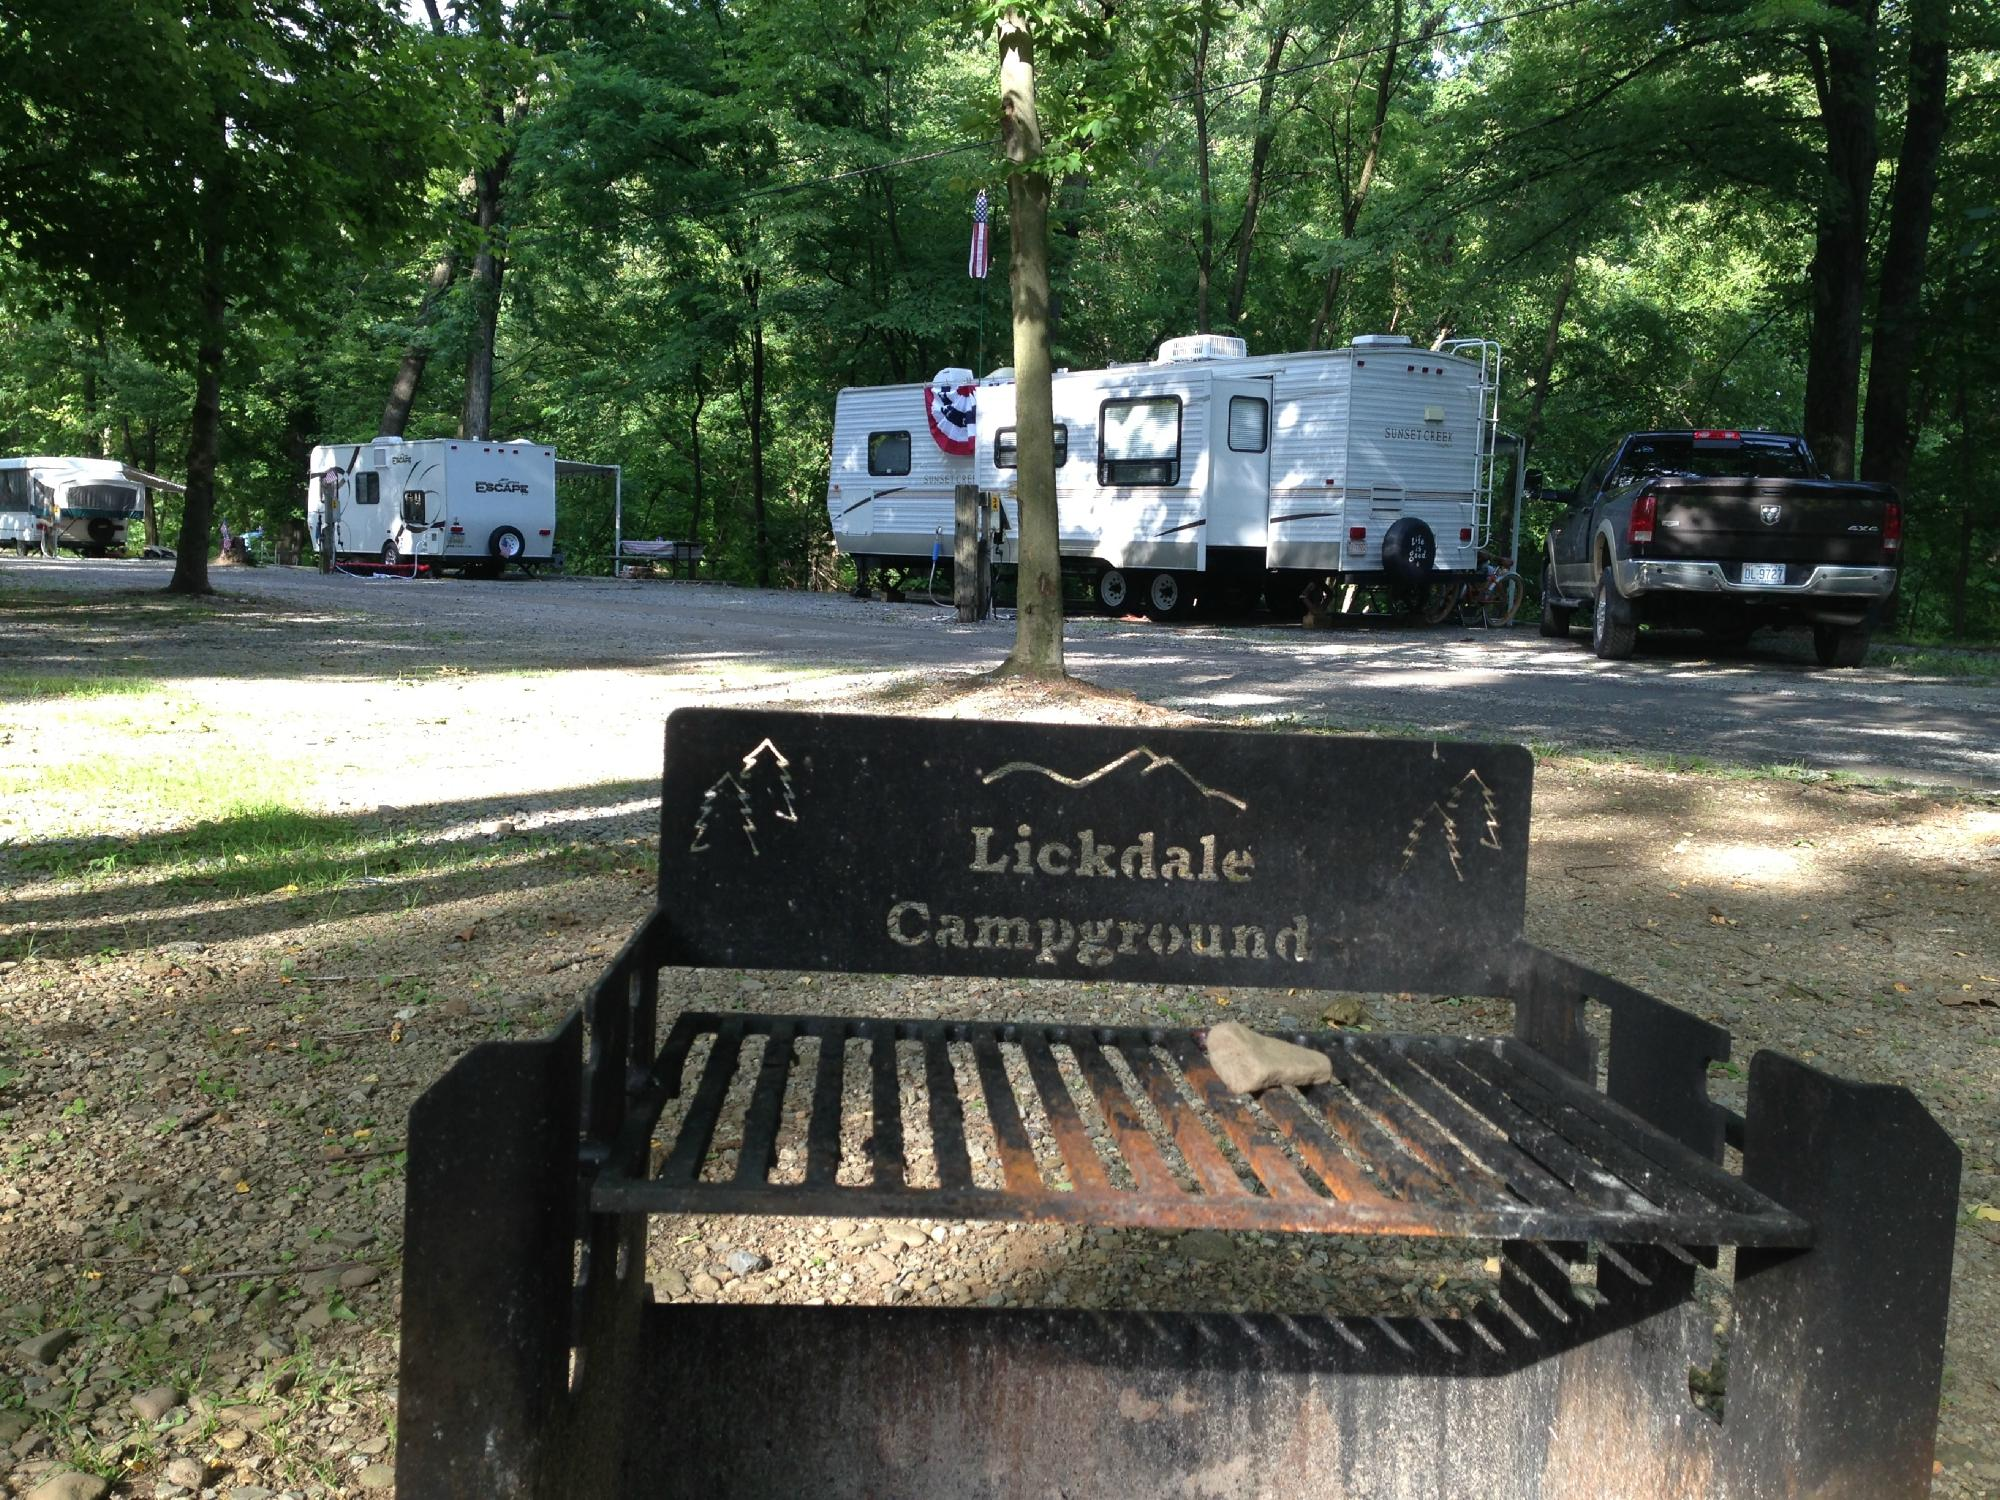 Lickdale Campground